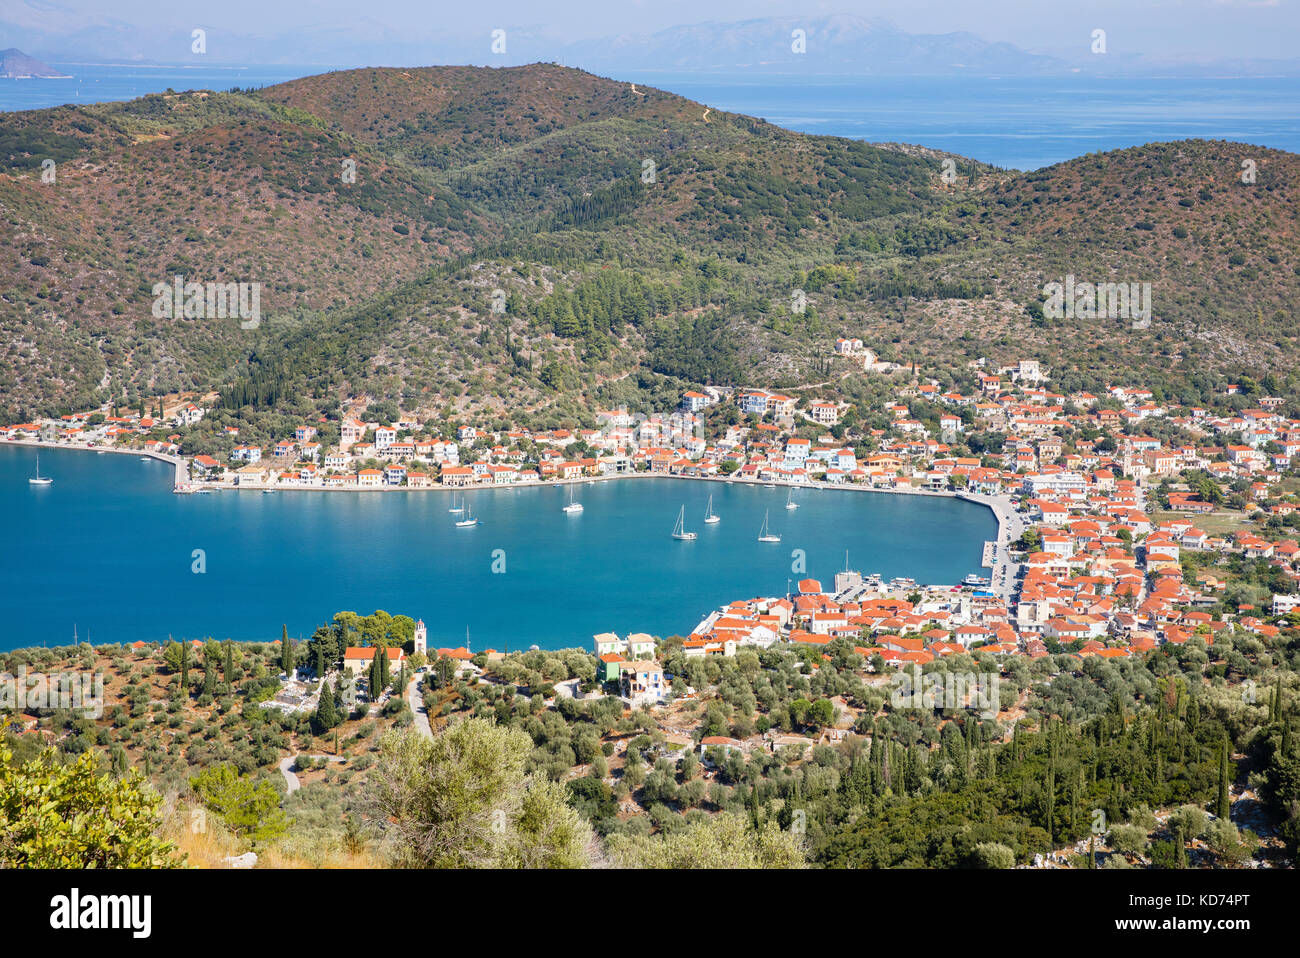 Looking down to the harbour town of Vathy the capital of Ithaka in the Ionian Islands of Greece - Stock Image